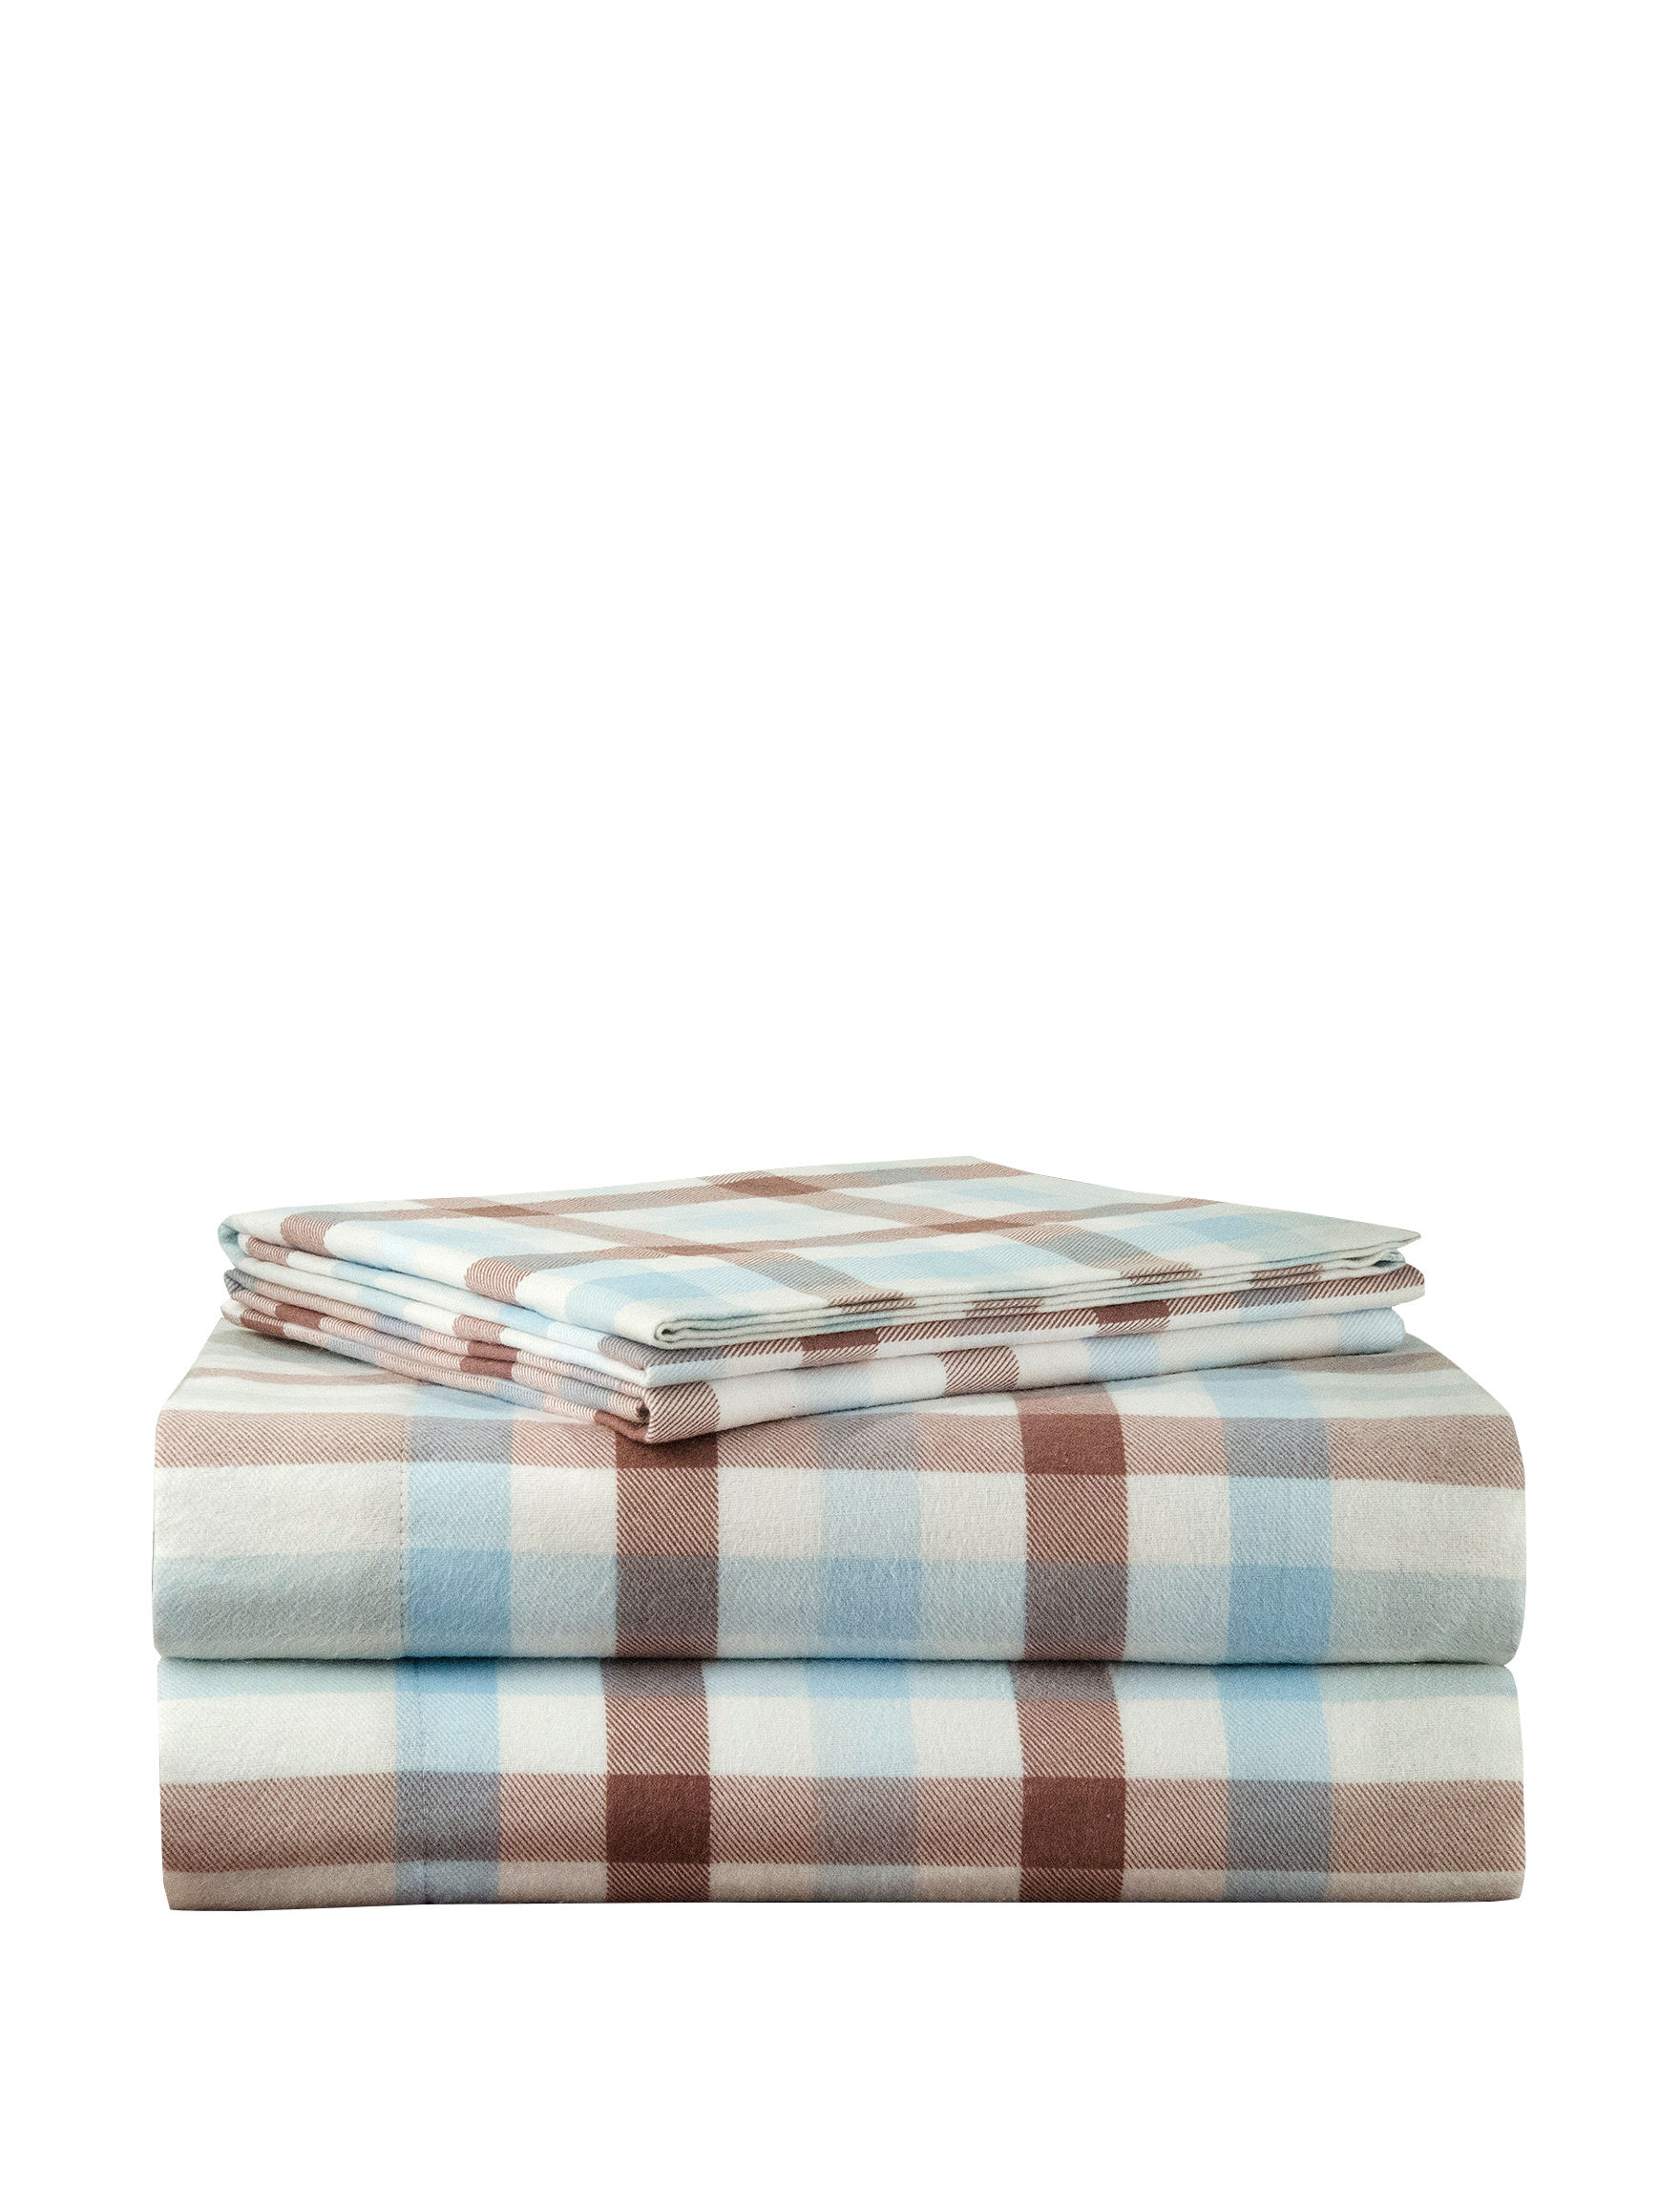 Pointehaven Brown Sheets & Pillowcases